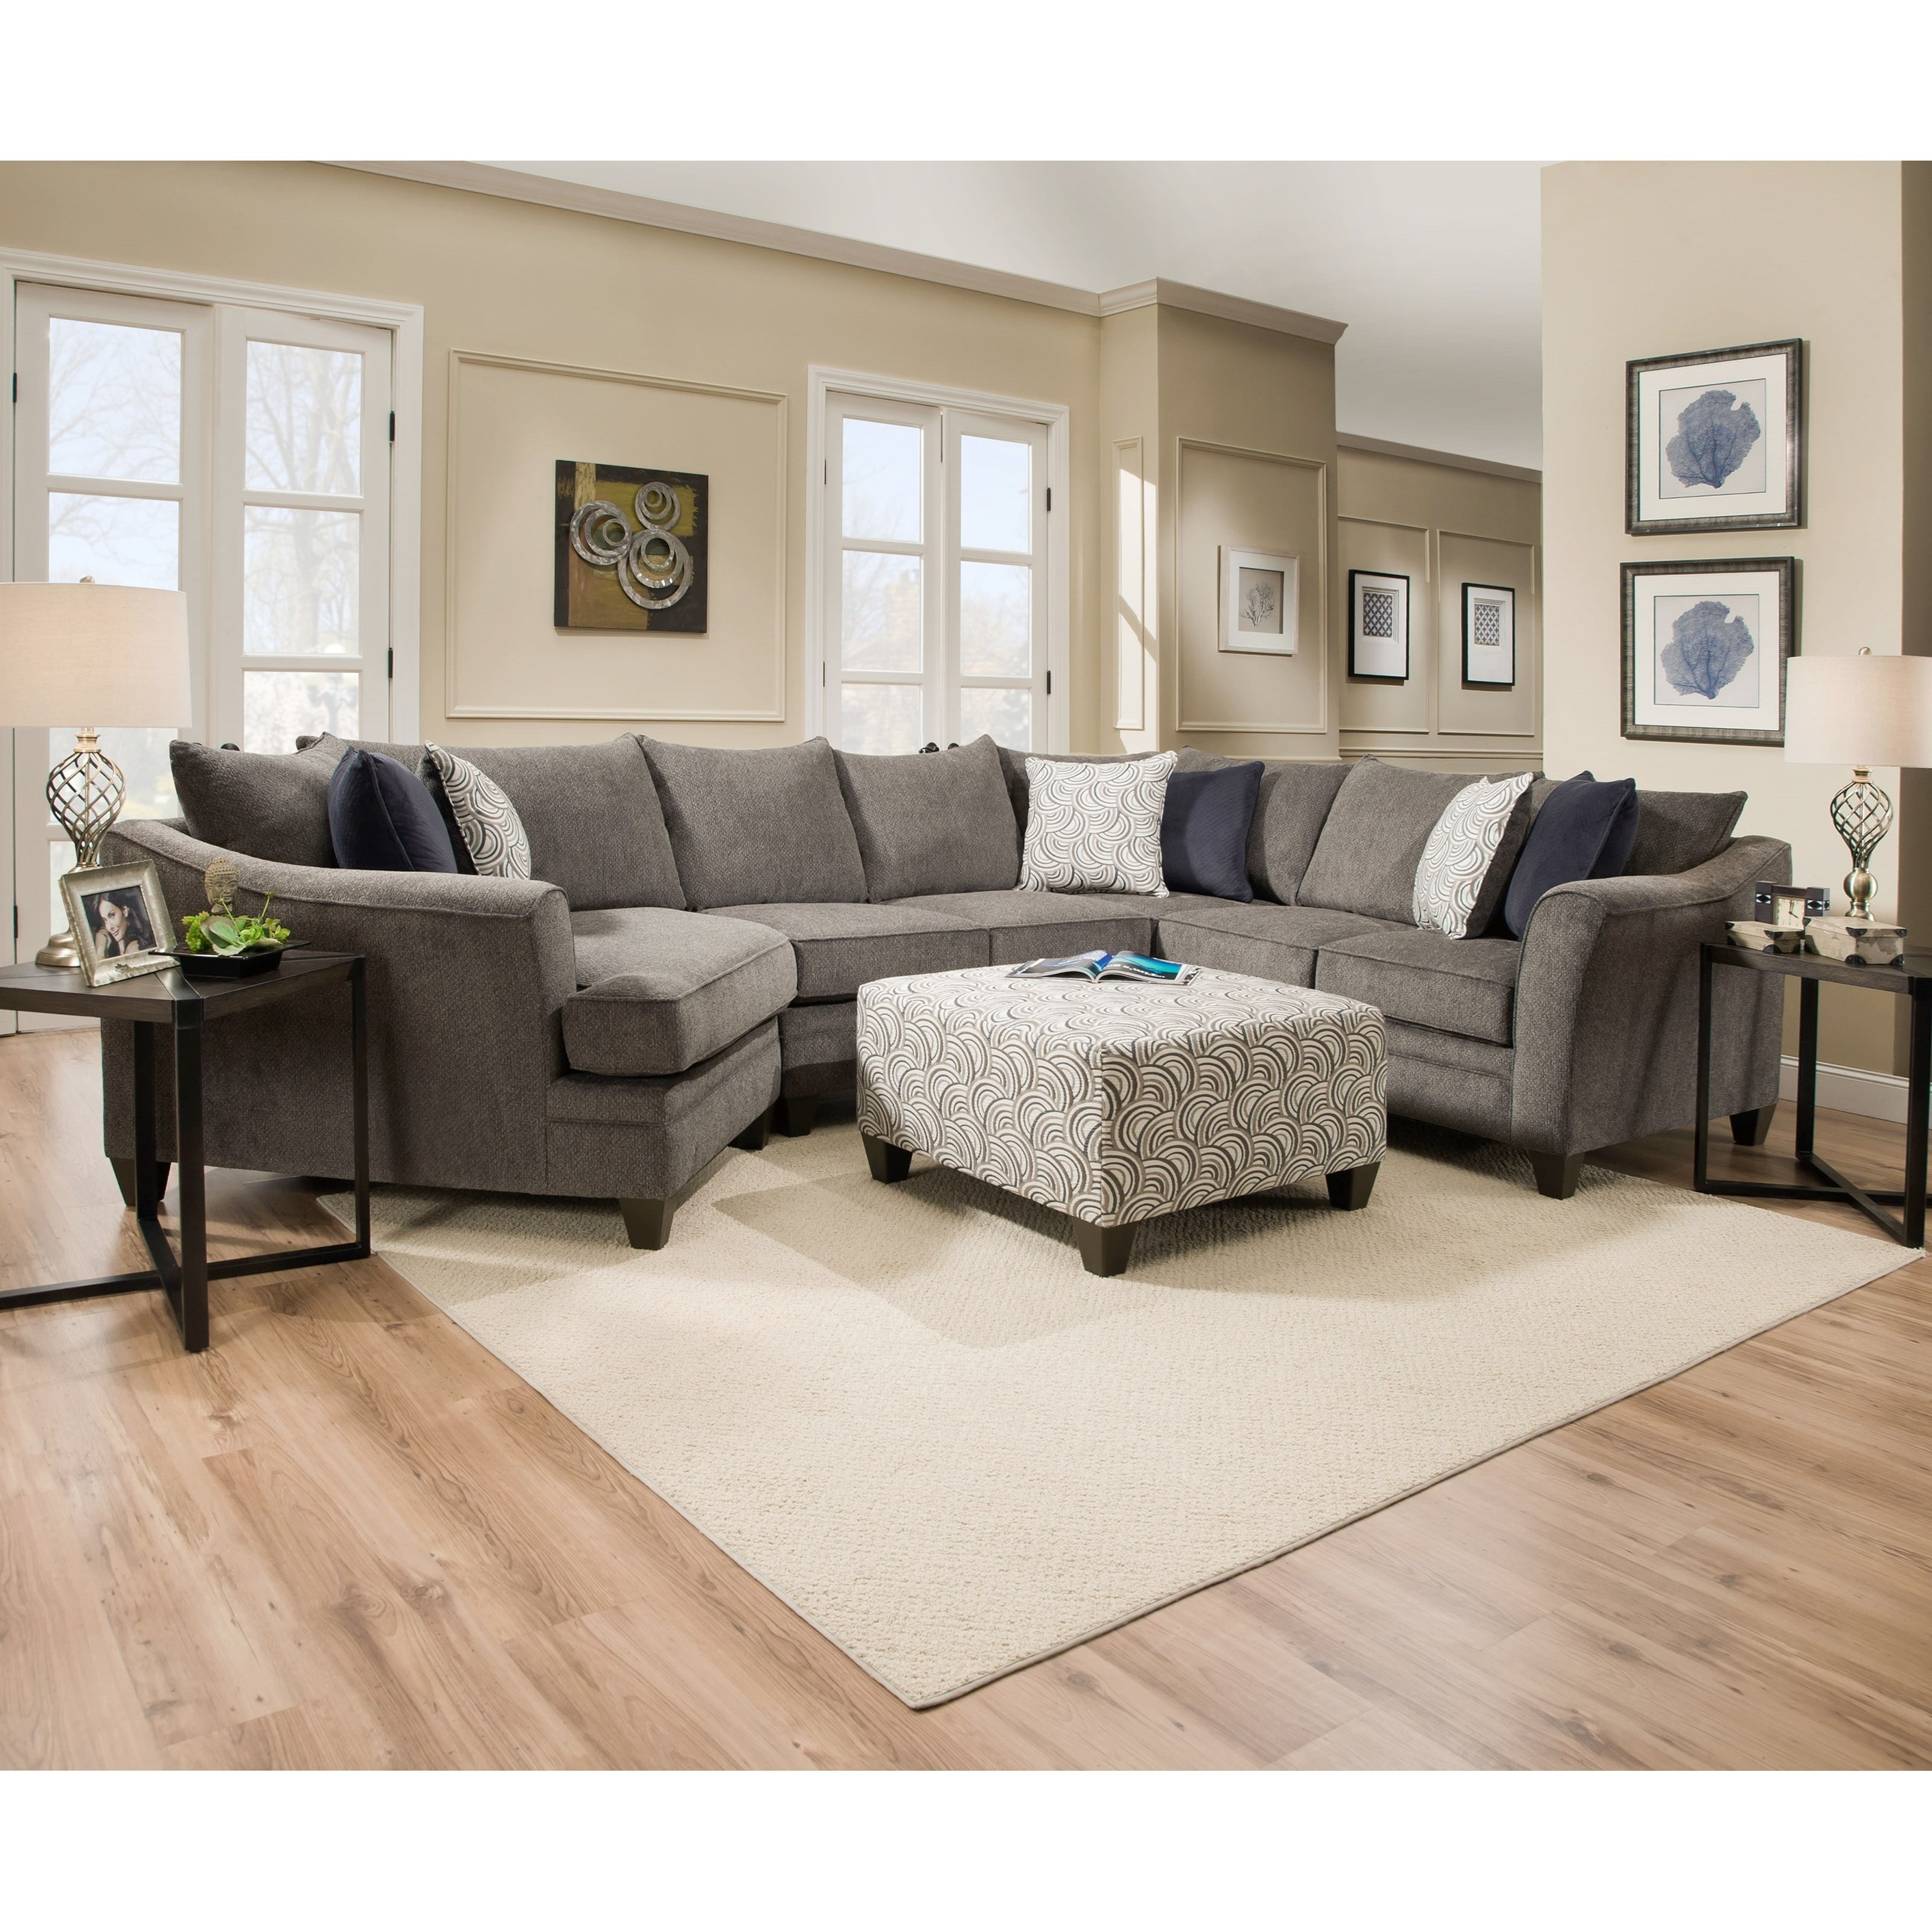 United Furniture Industries 6485 Pewter Transitional Sectional inside Glamour Ii 3 Piece Sectionals (Image 30 of 30)